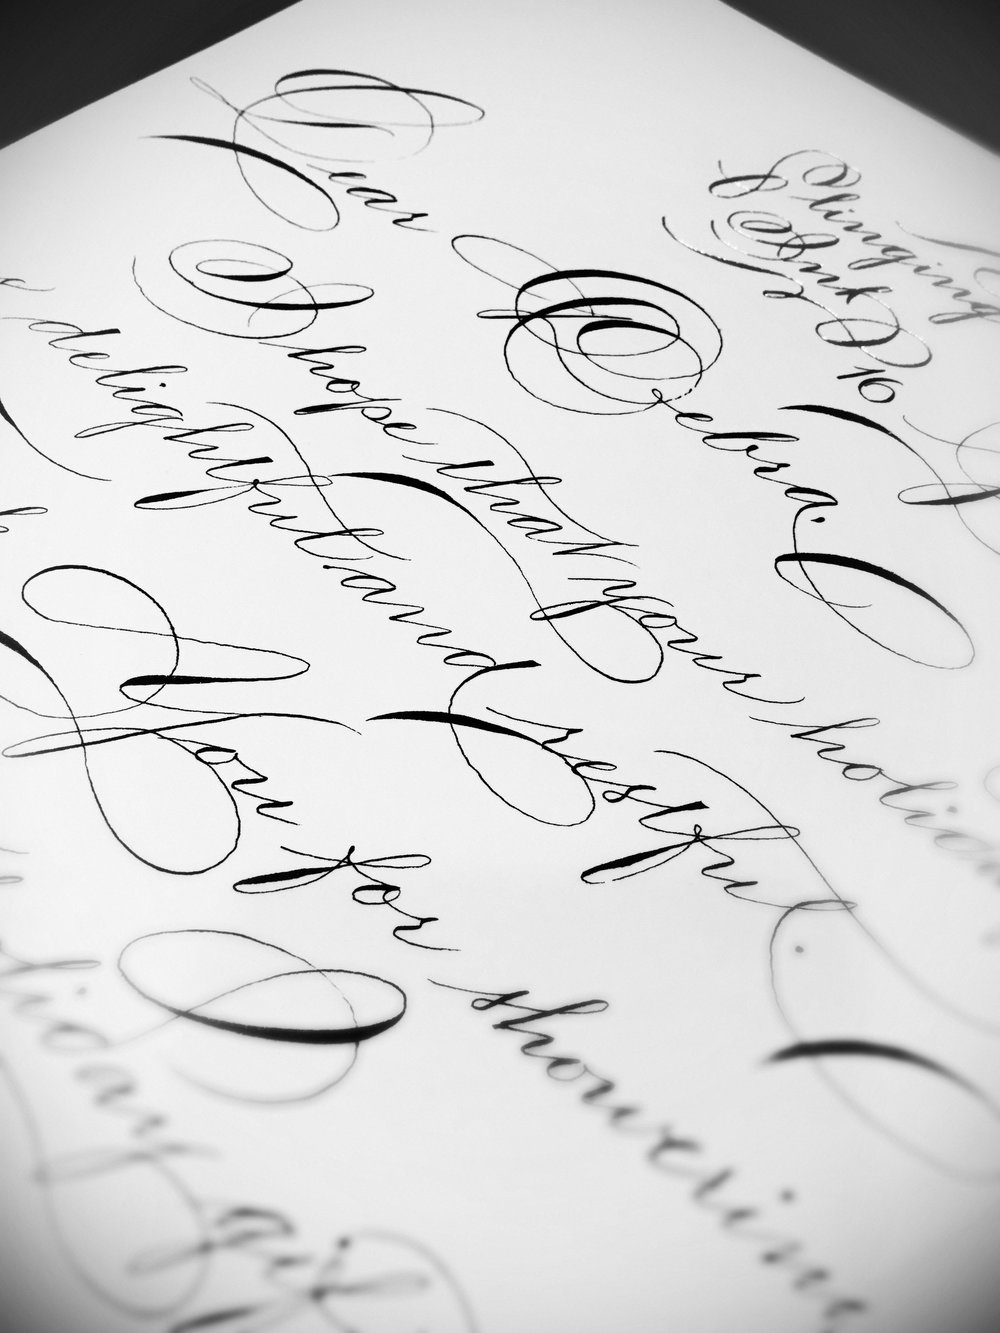 Houston Calligraphy Hand Lettering Penman Slinging Ink Lette.JPG